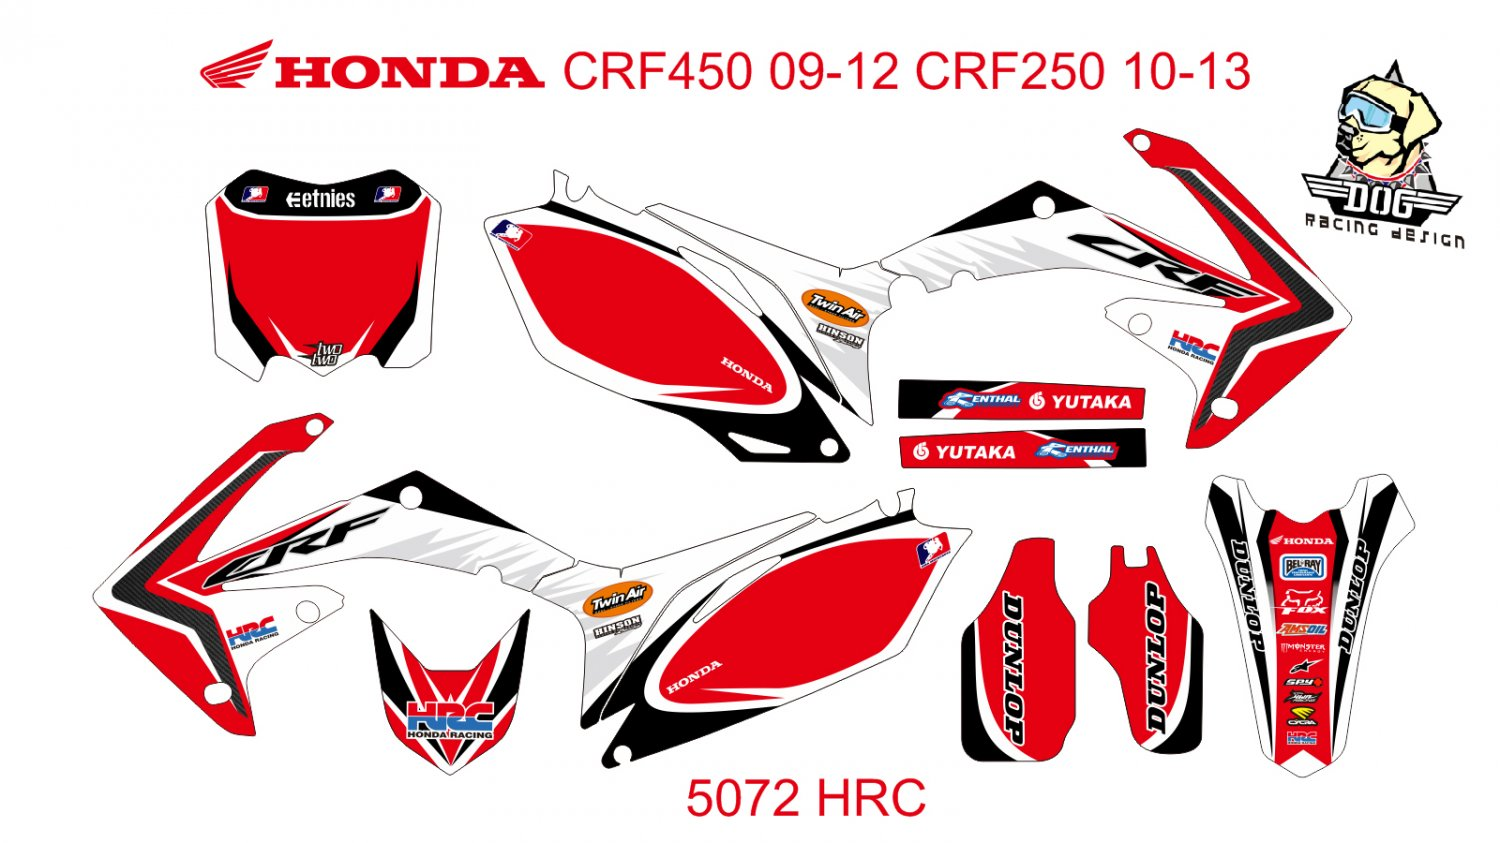 HONDA CRF 450 2009-2012 CRF 250 2010-2013 GRAPHIC DECAL KIT CODE.5072